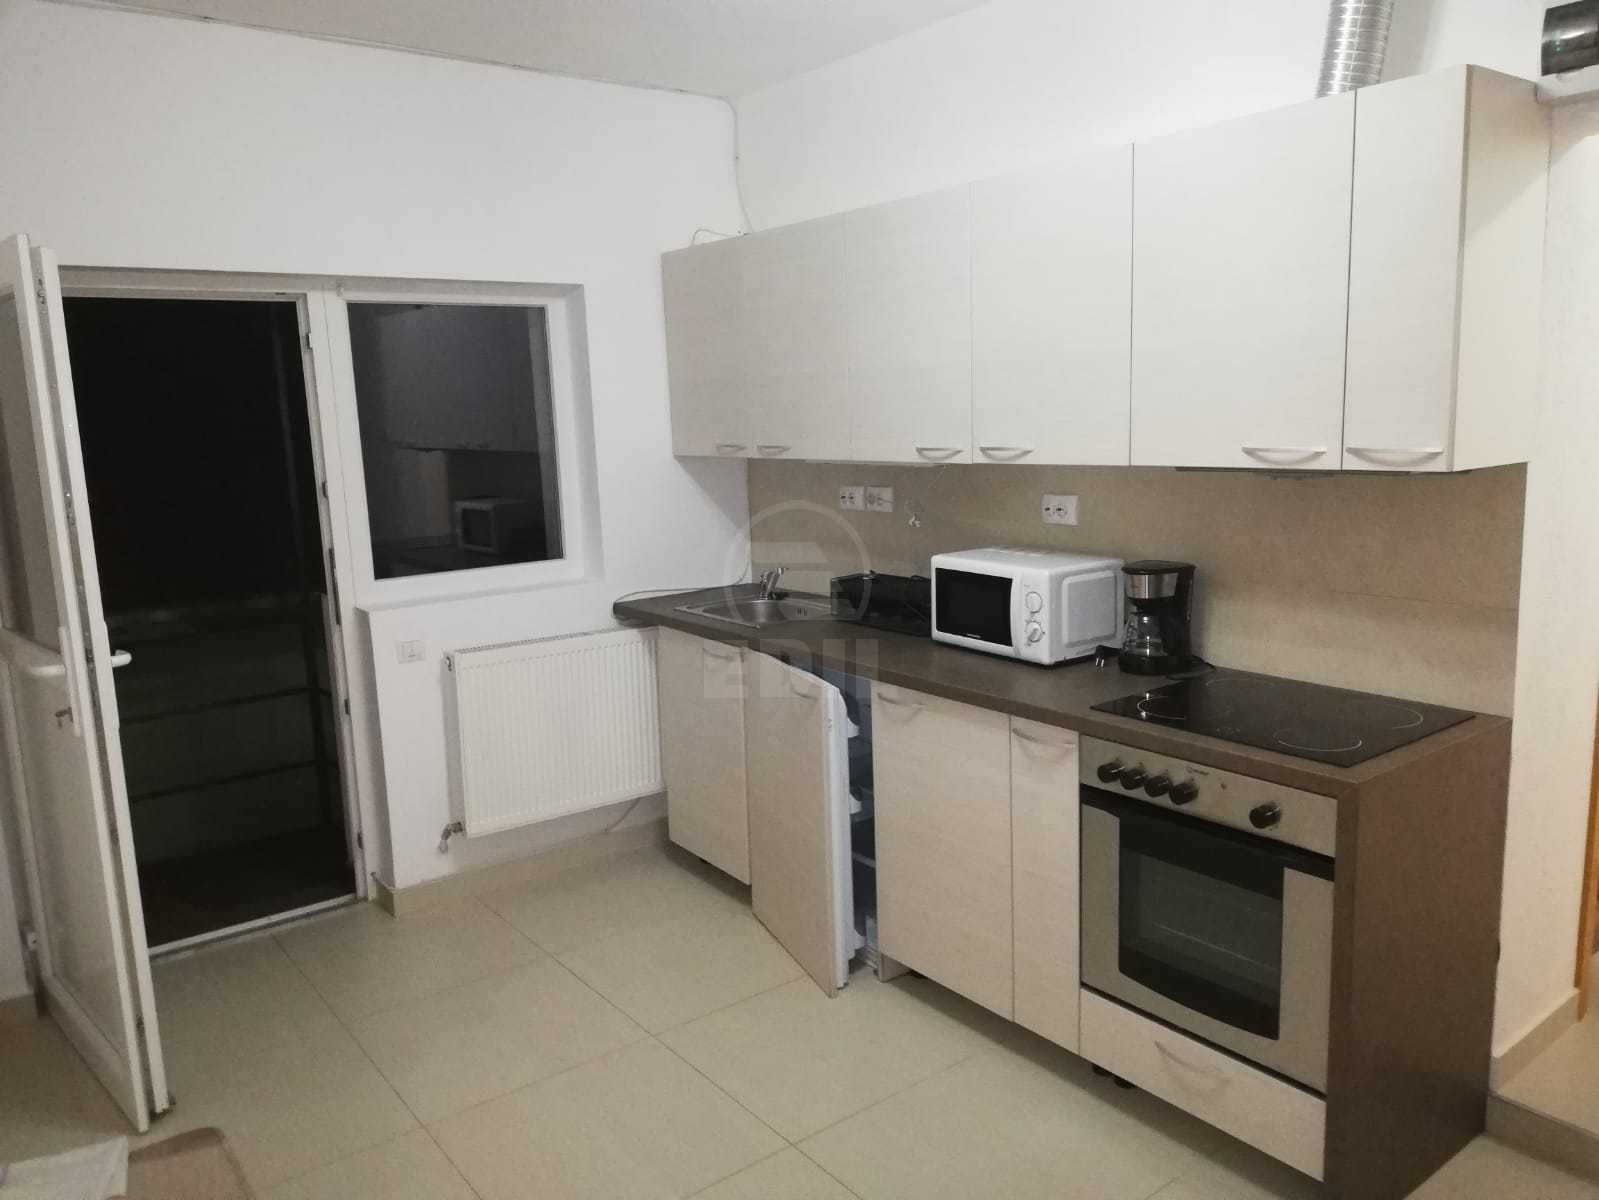 Apartment for rent 3 rooms, APCJ305940-5